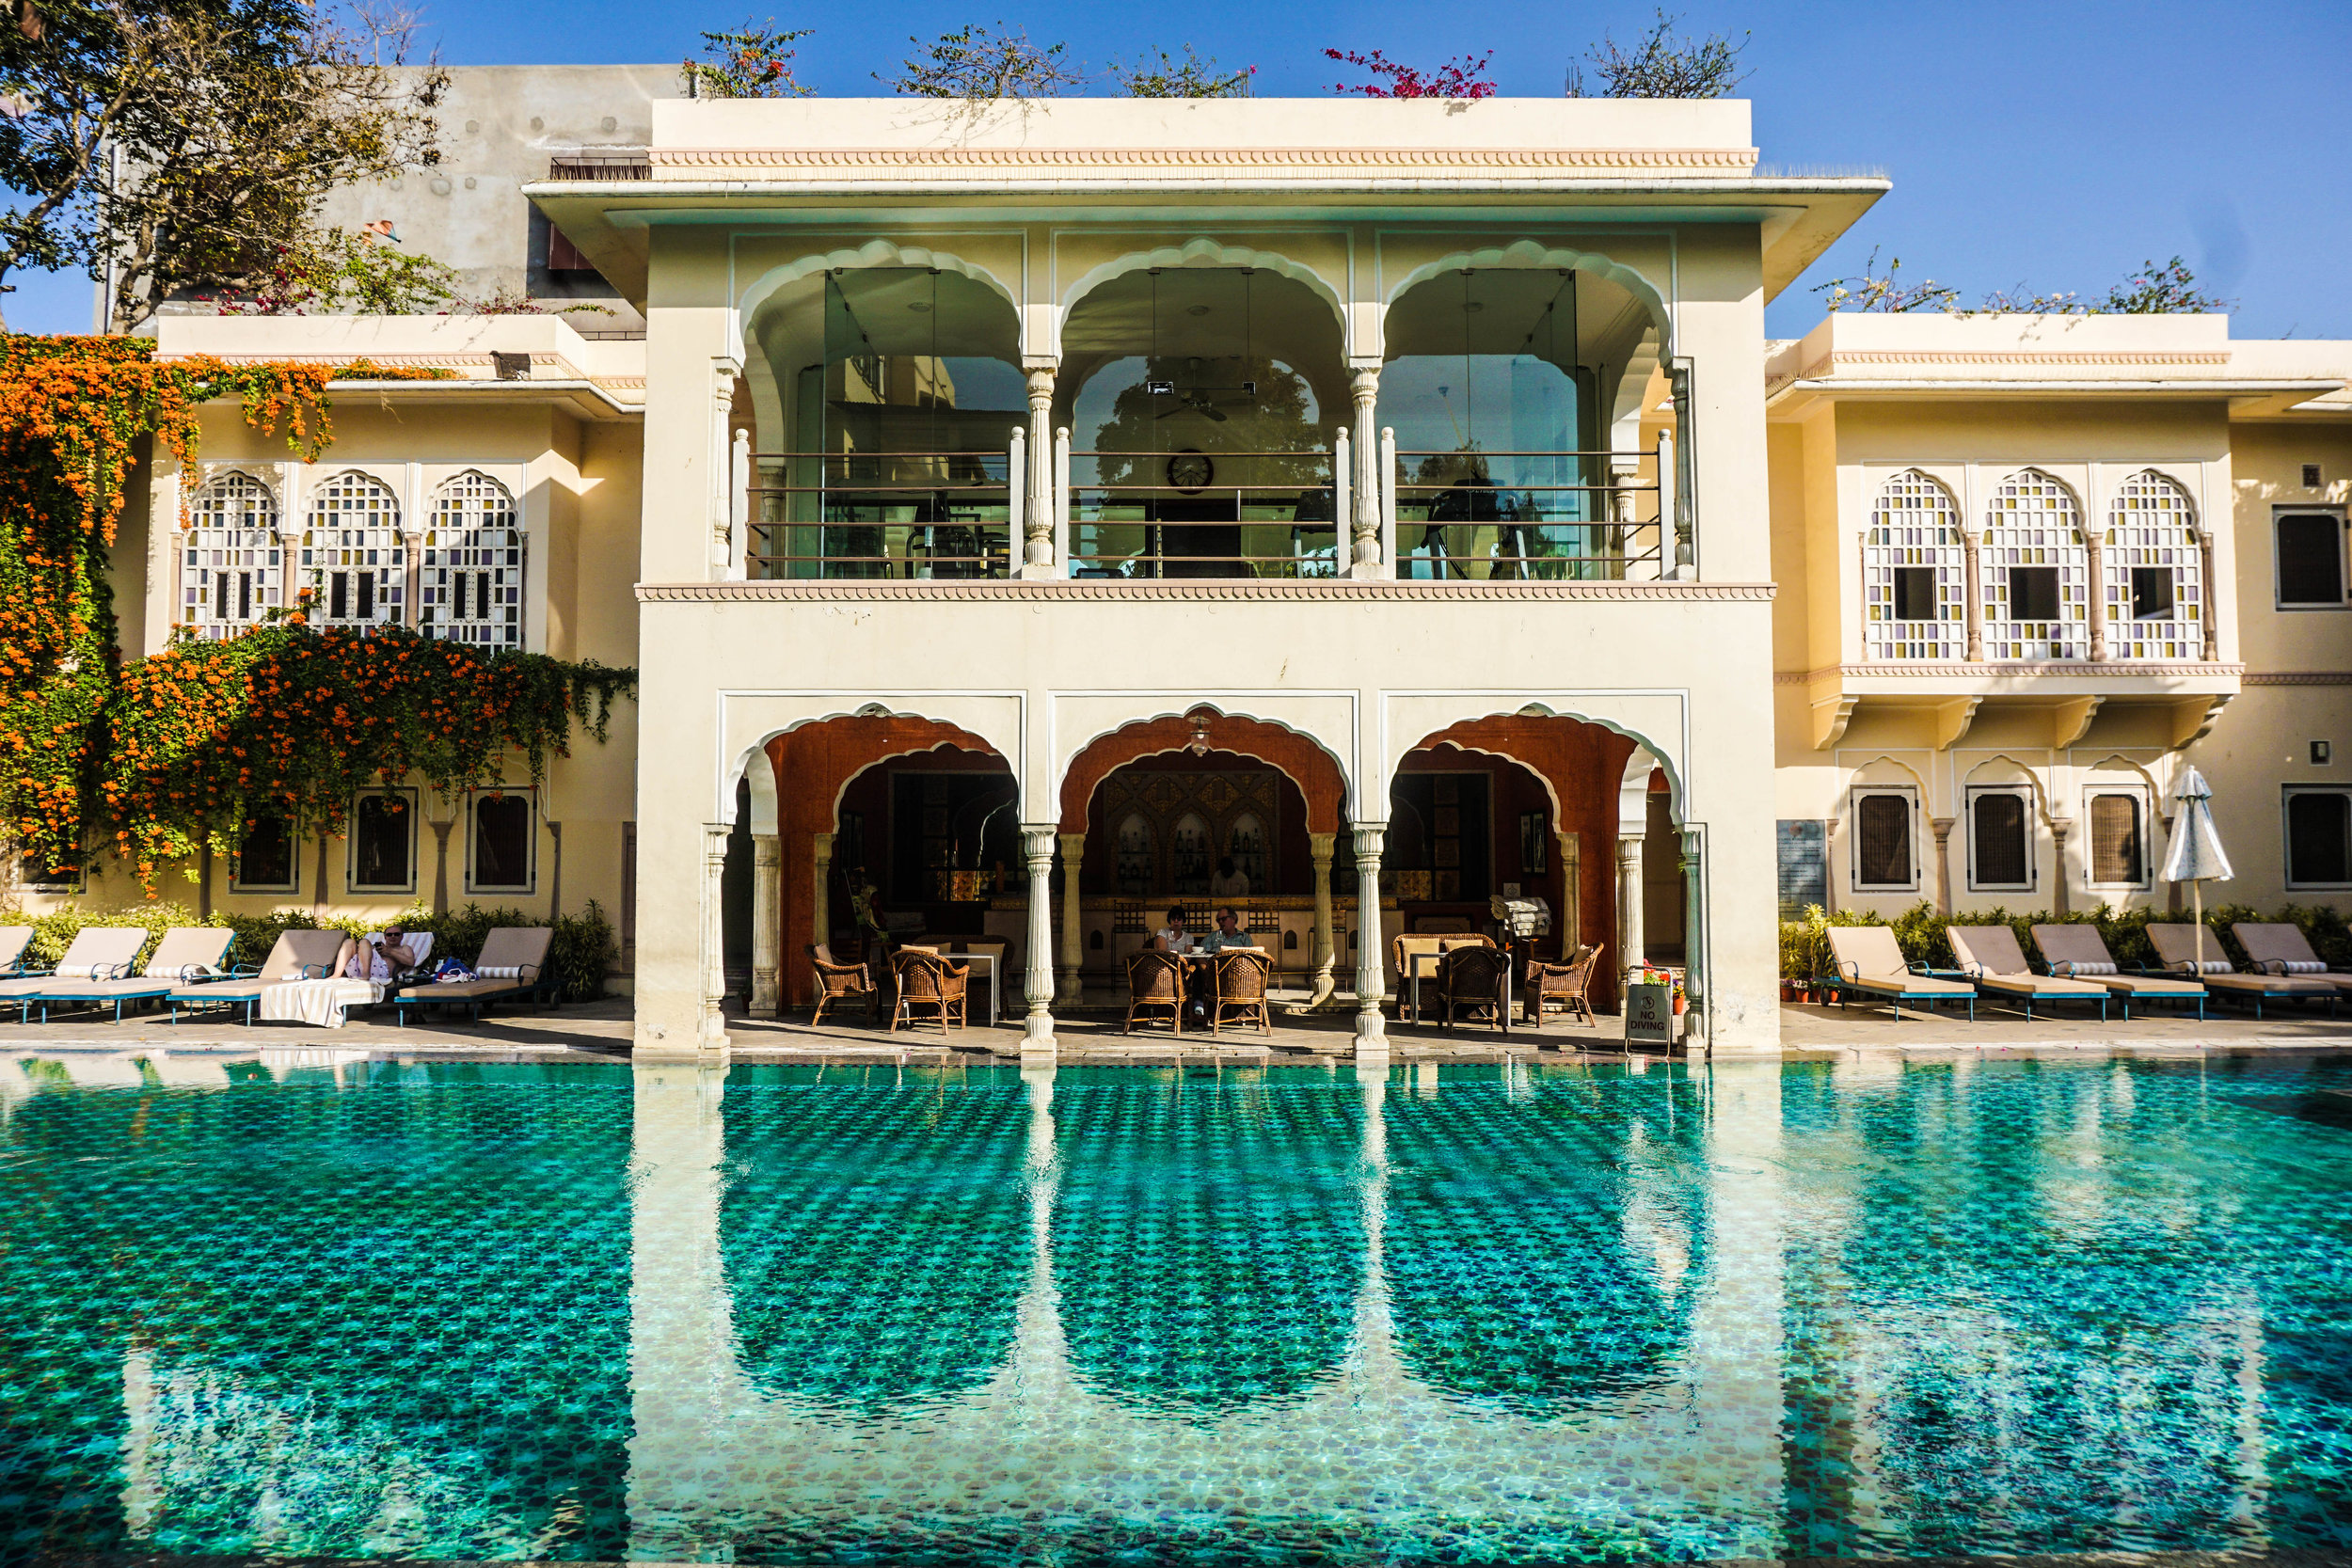 The pool at Samode Haveli is meant only for guests and residents